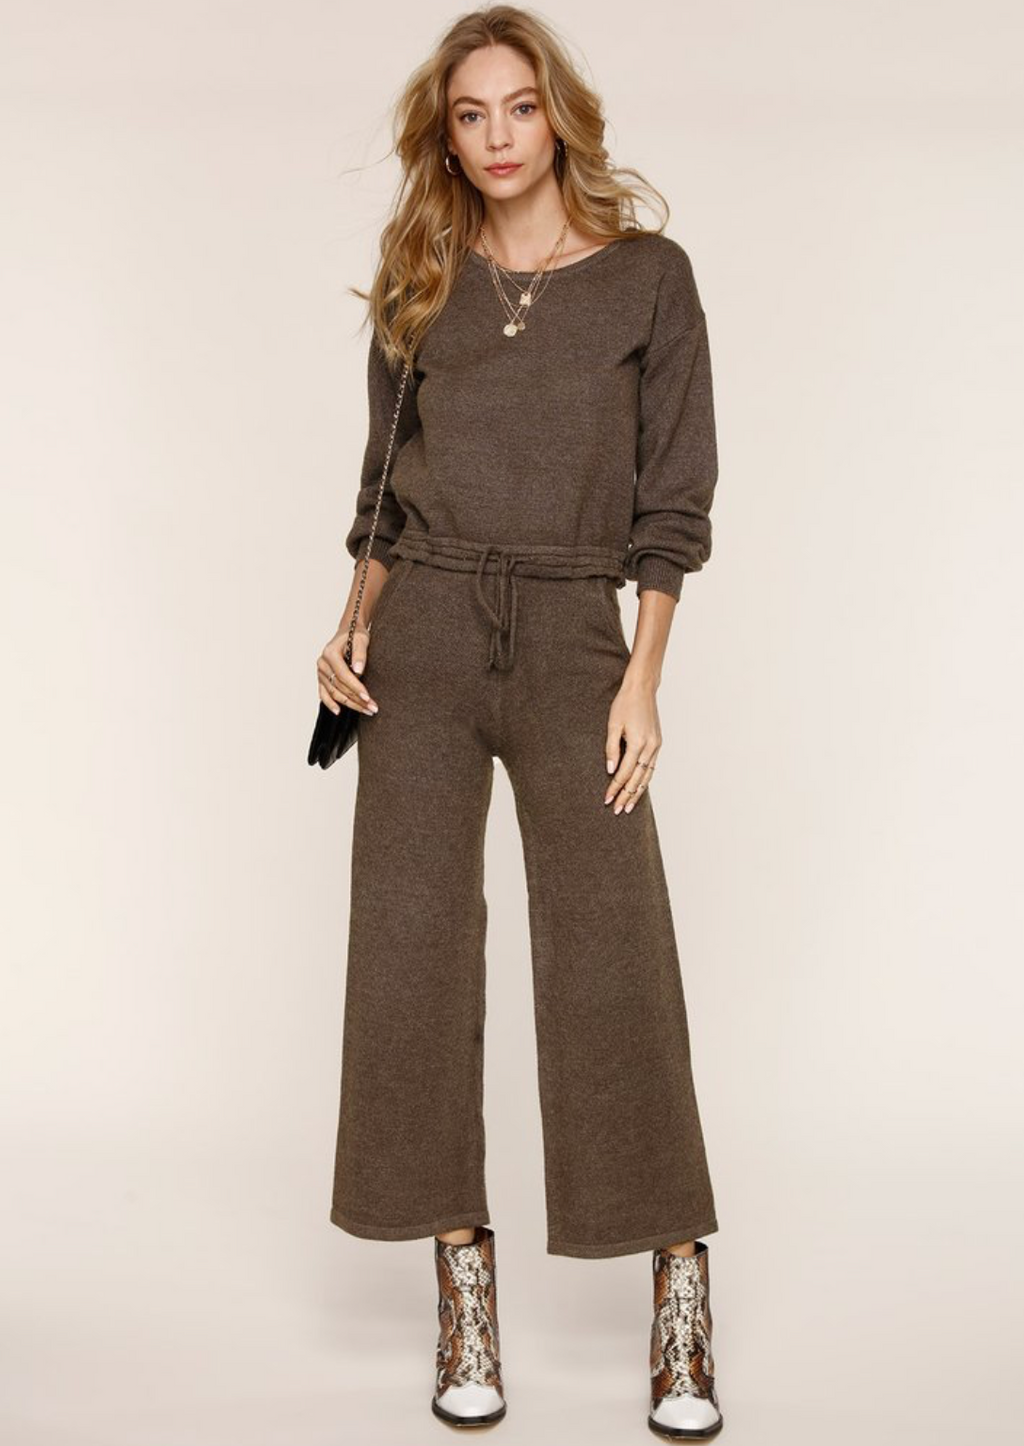 UNIKONCEPT:Lifestyle boutique; image shows an olive green coloured lounge set by Heartloom. The Evie set features a crewneck and a pair of culottes. The crew neck is a dark olive green forest colour and has a drawstring around the waist to tighten. The culottes are a shorter pant features an elastic waistband and a wide leg